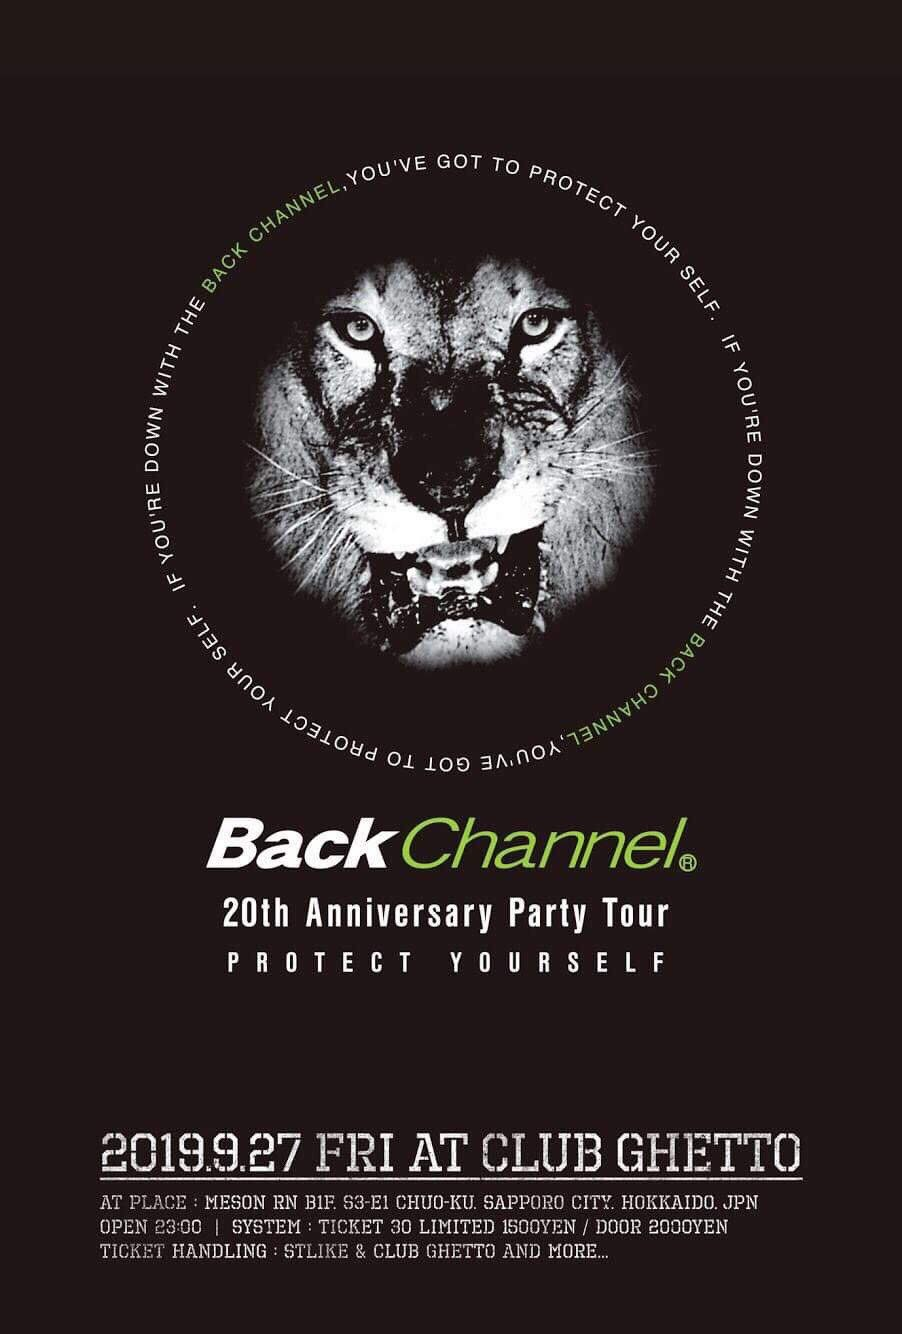 【PARTY info】0190927 Back Channel 20TH ANNIVERSARY